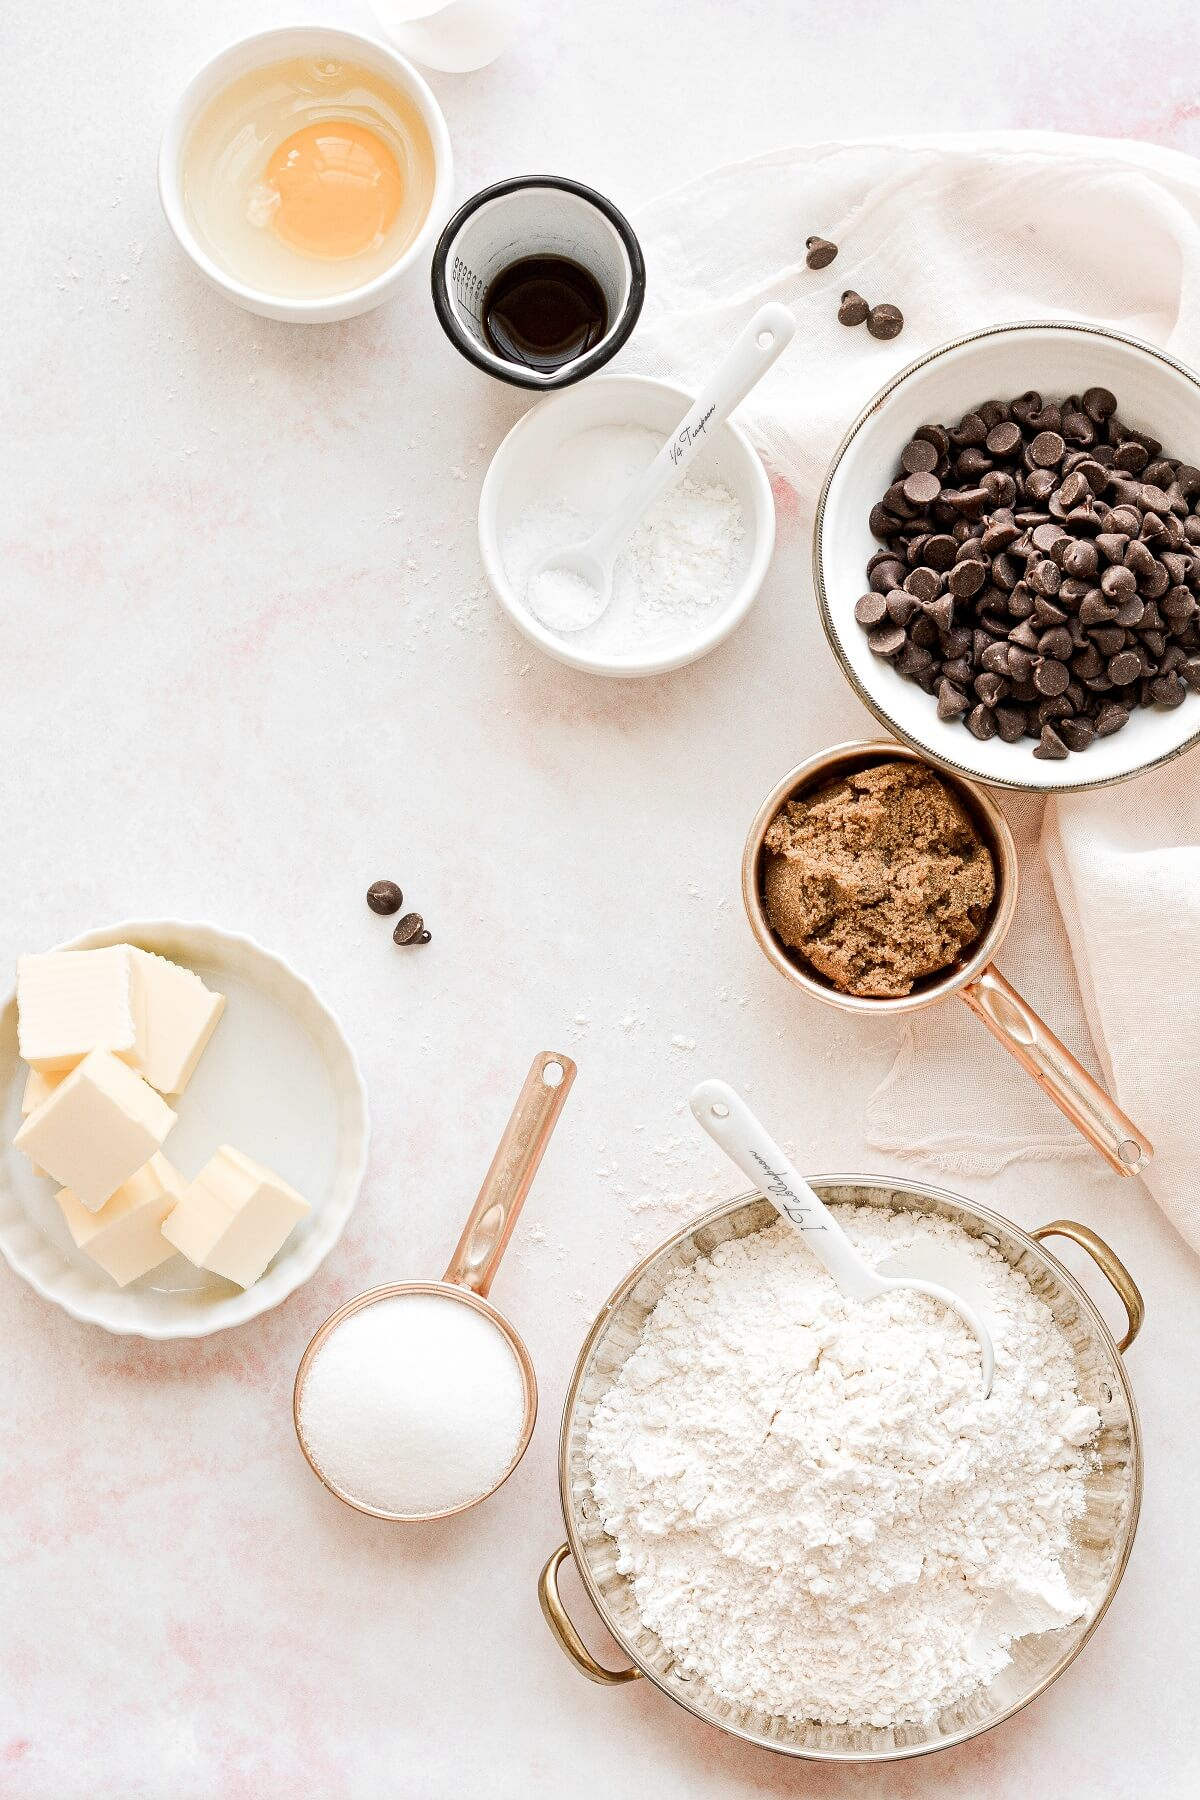 An arrangement of ingredients for chocolate chip cookies.